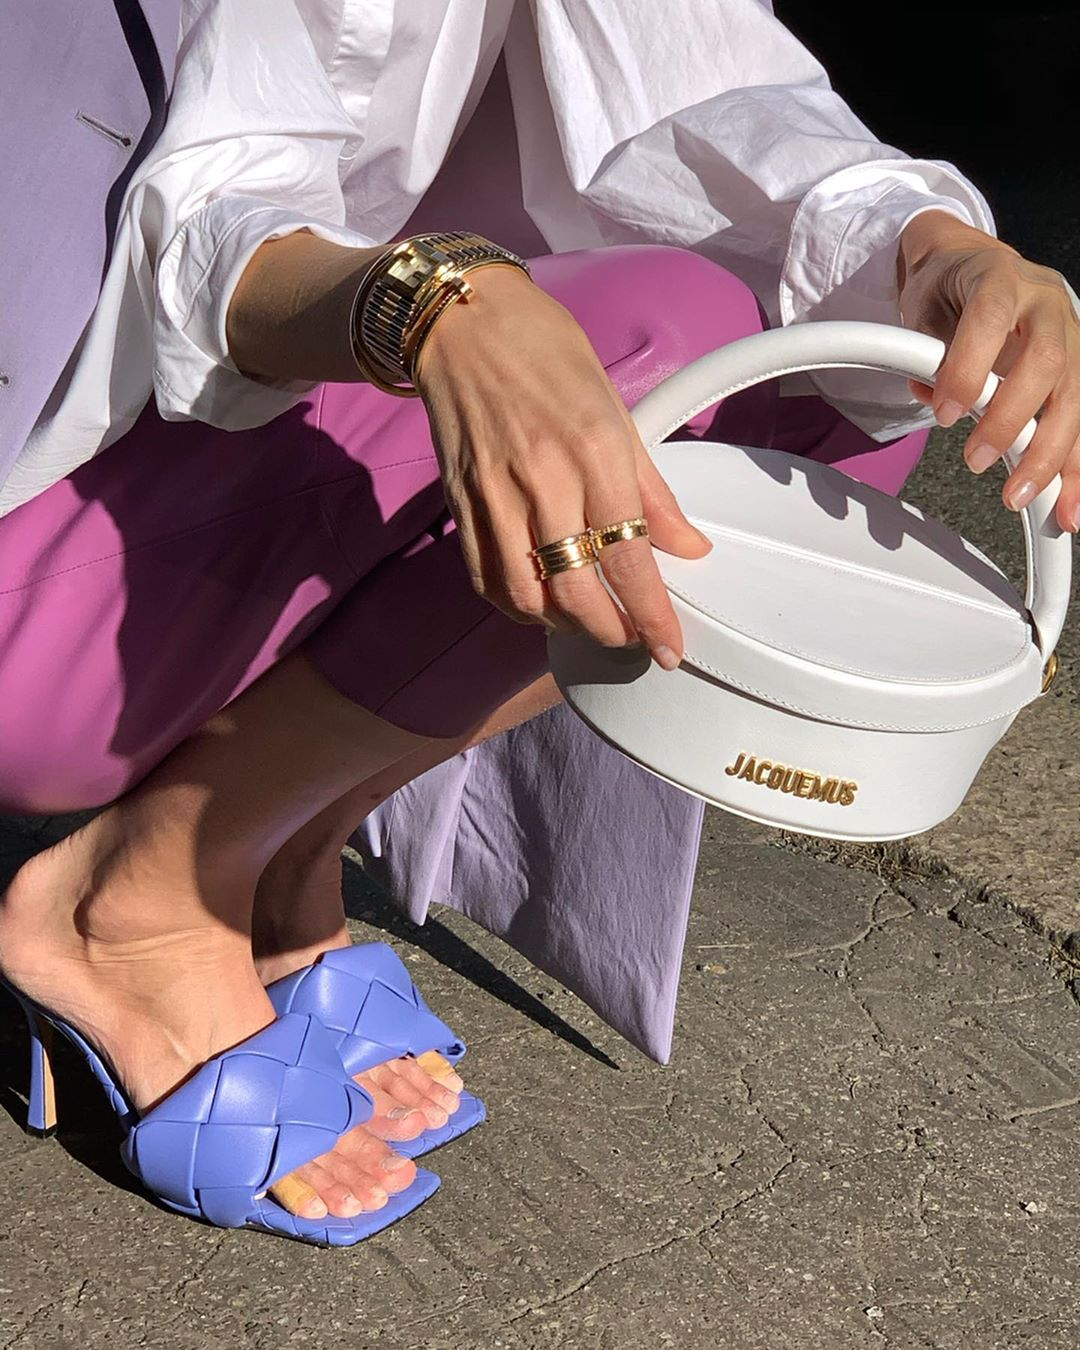 White La Boite Bag and Purple Padded Sandals